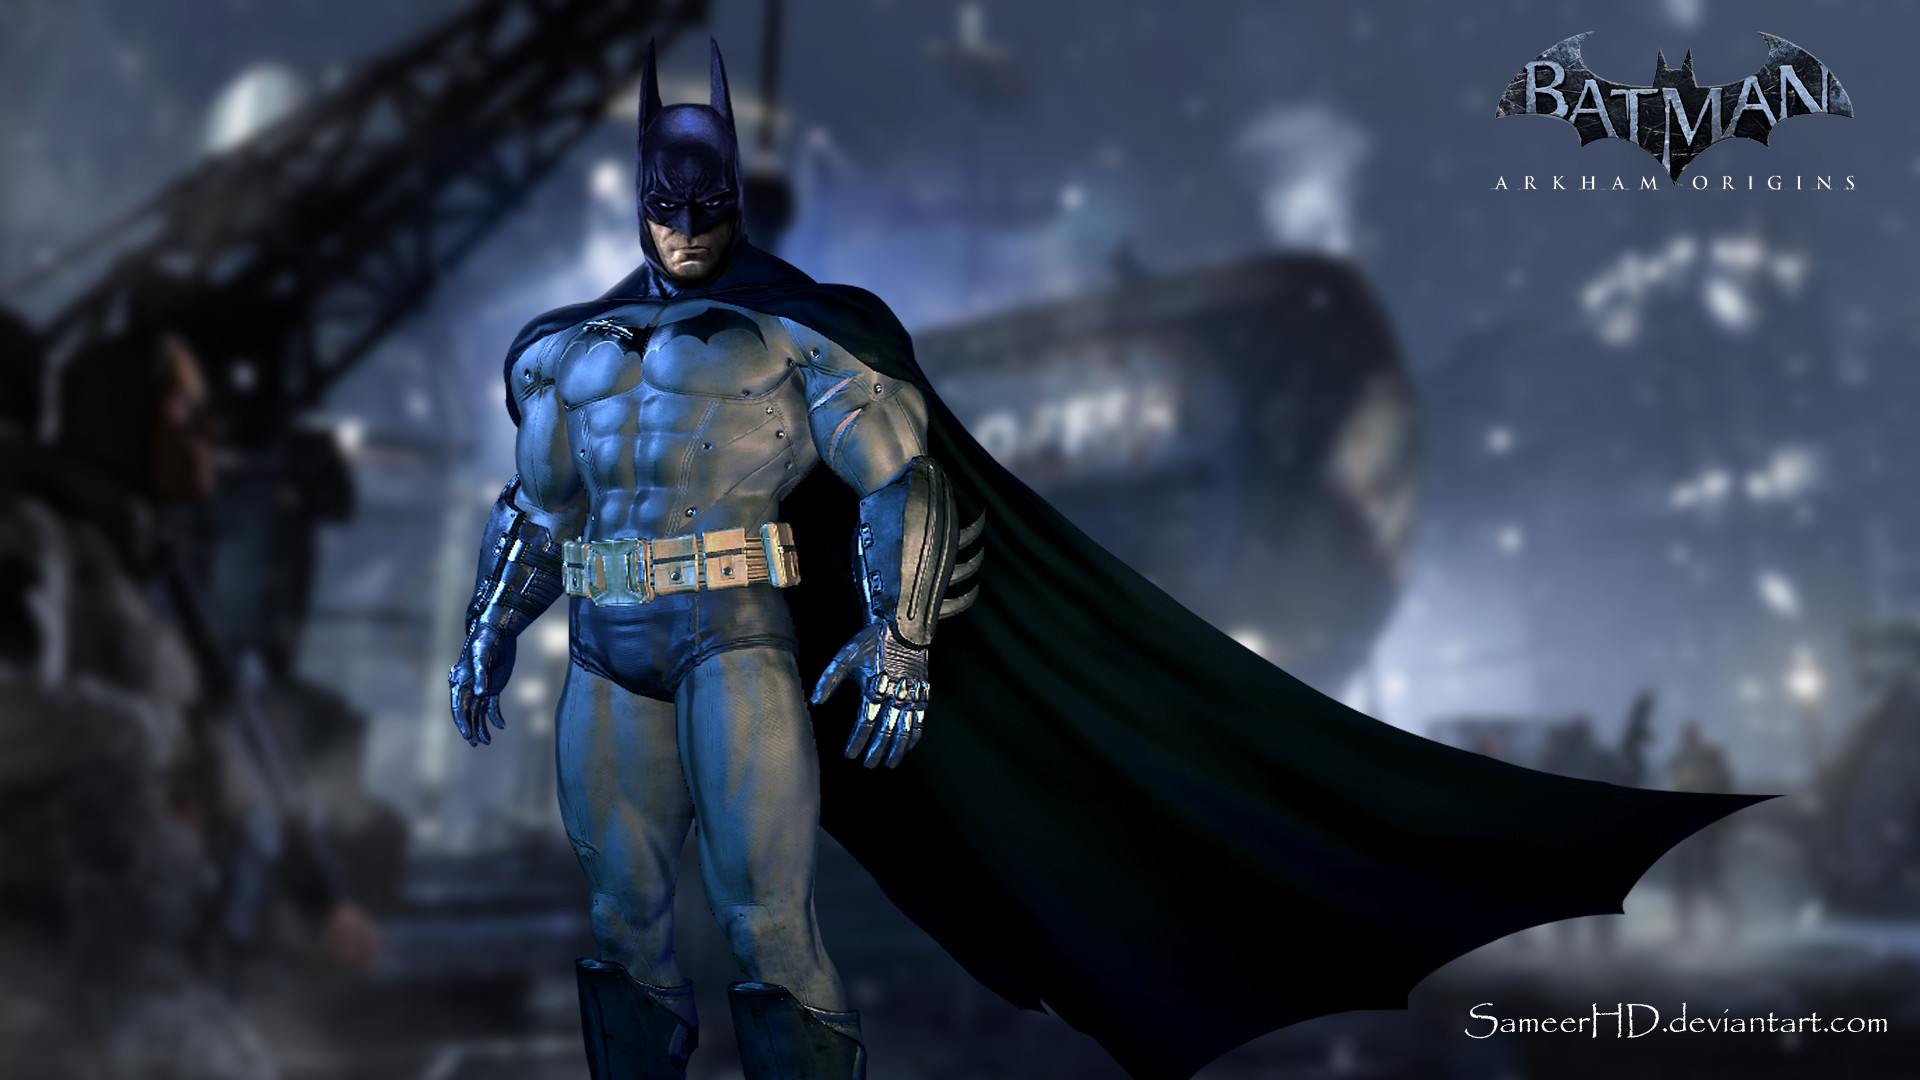 1920x1080 Batman Arkham Origins Wallpaper by SameerHD Batman Arkham Origins Wallpaper  by SameerHD